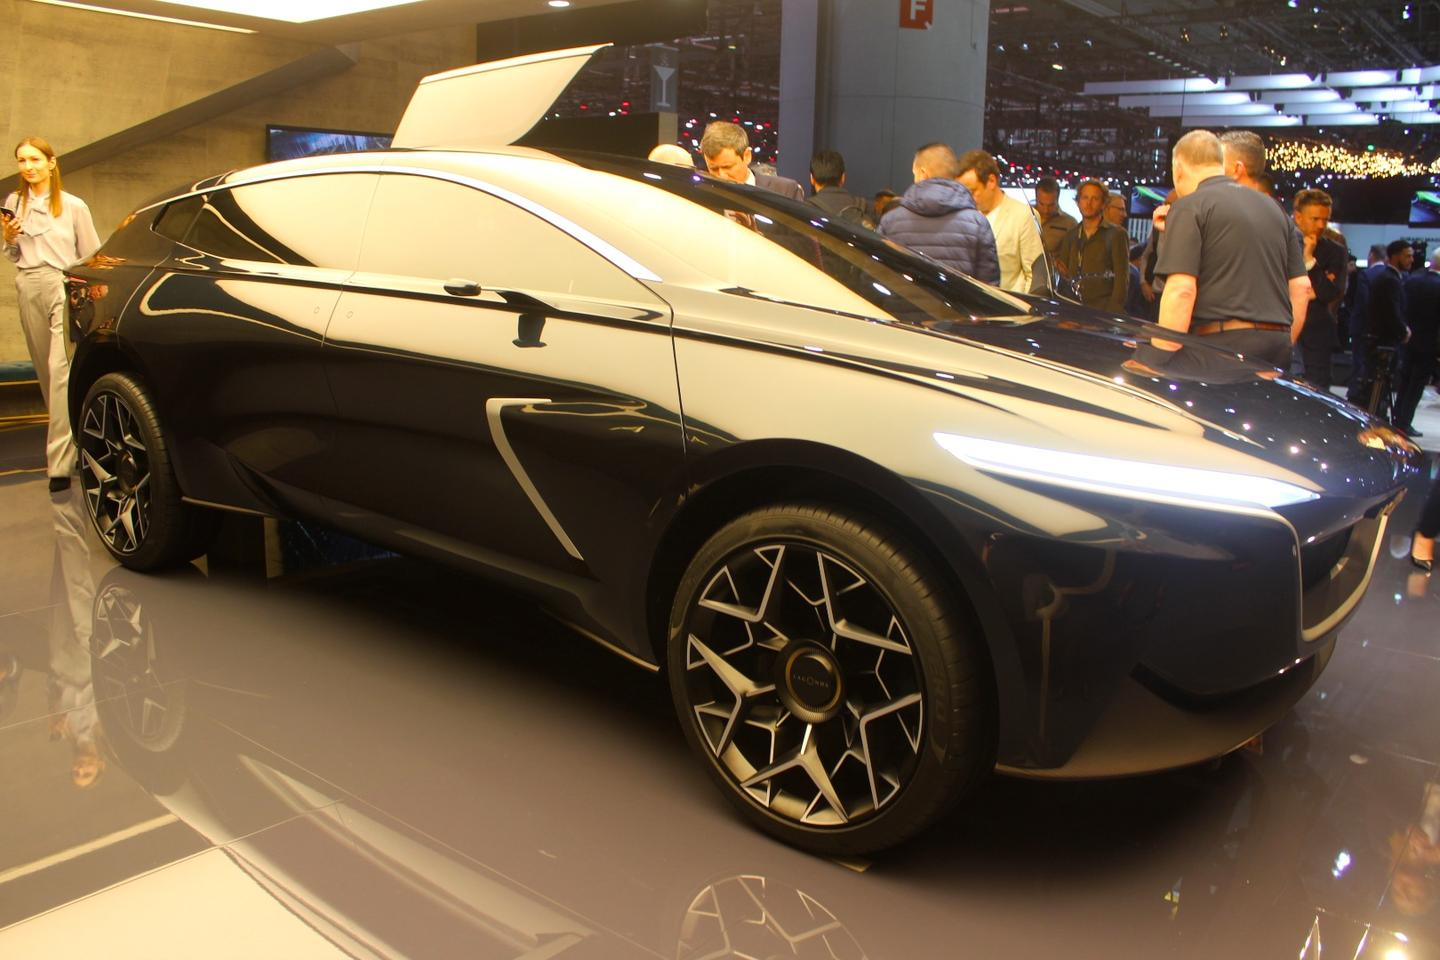 The Aston Martin Lagonda All-Terrain Concept hints at the design direction and capability expectations the British carmaker has for the production version of this luxury utility